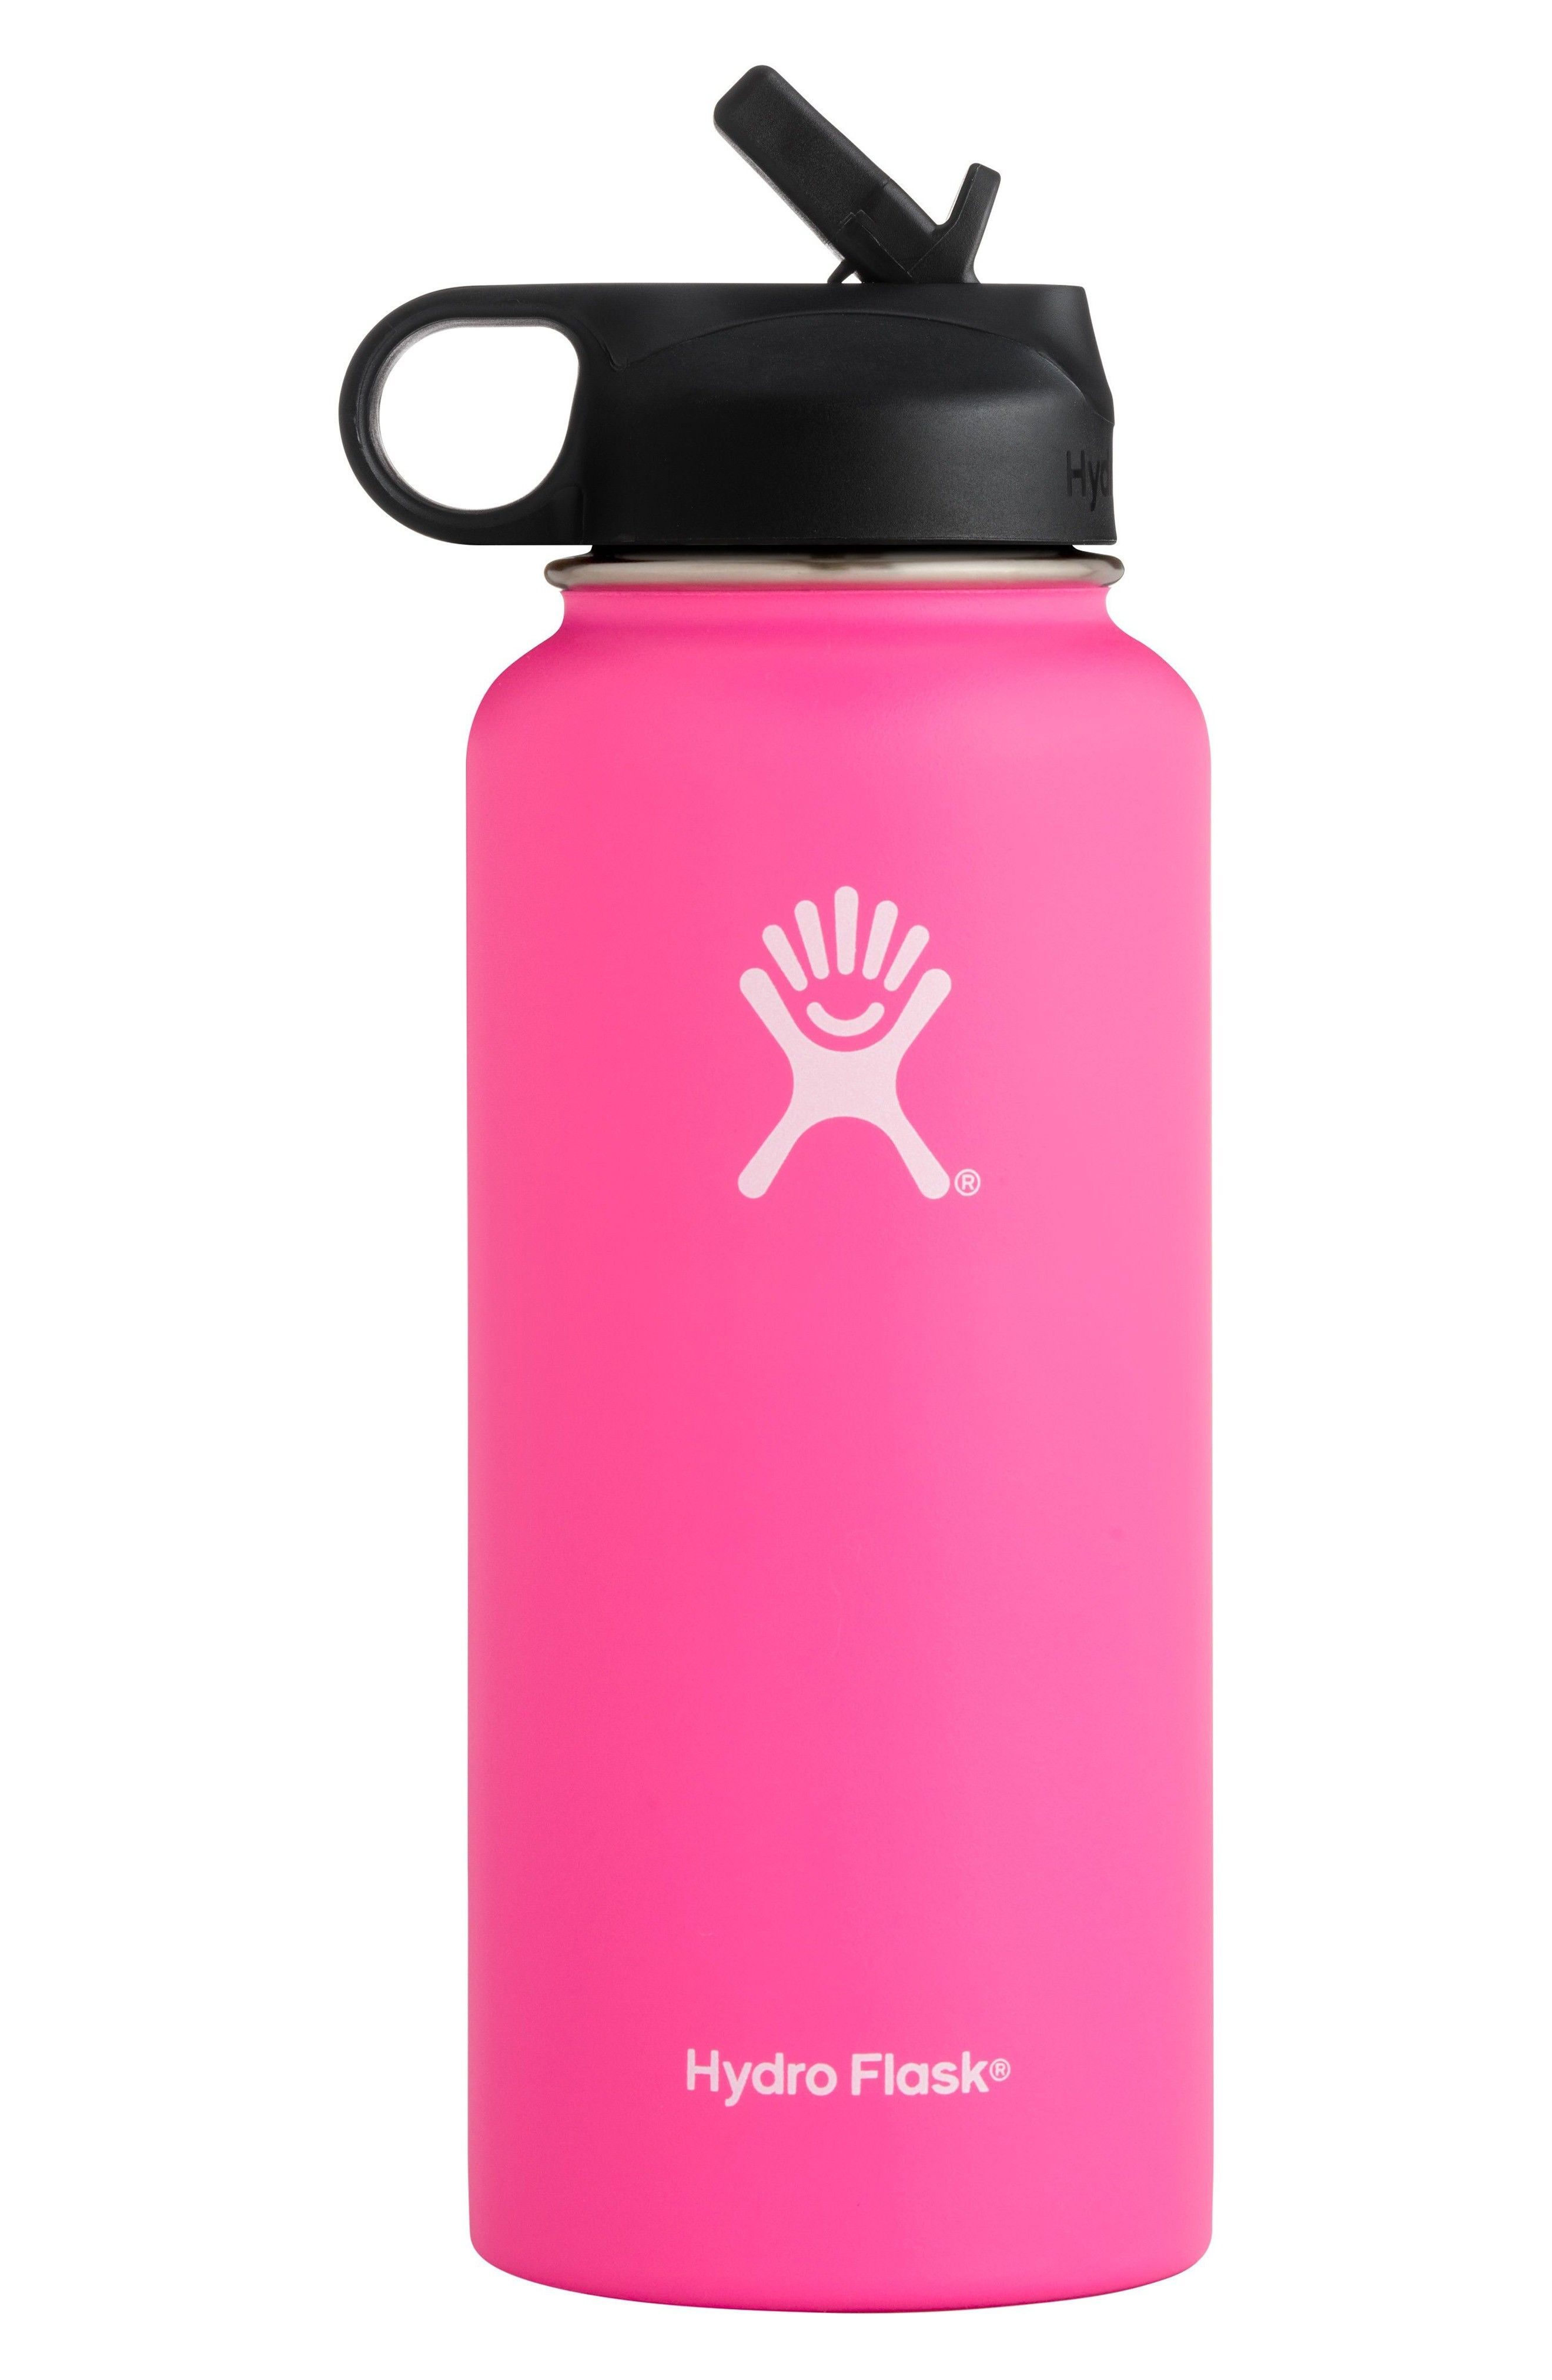 These Are The Best Water Bottles Graduation Gift Graduation Gift Idea Graduation Graduation High S Wide Mouth Bottle Hydroflask Hydro Flask Water Bottle